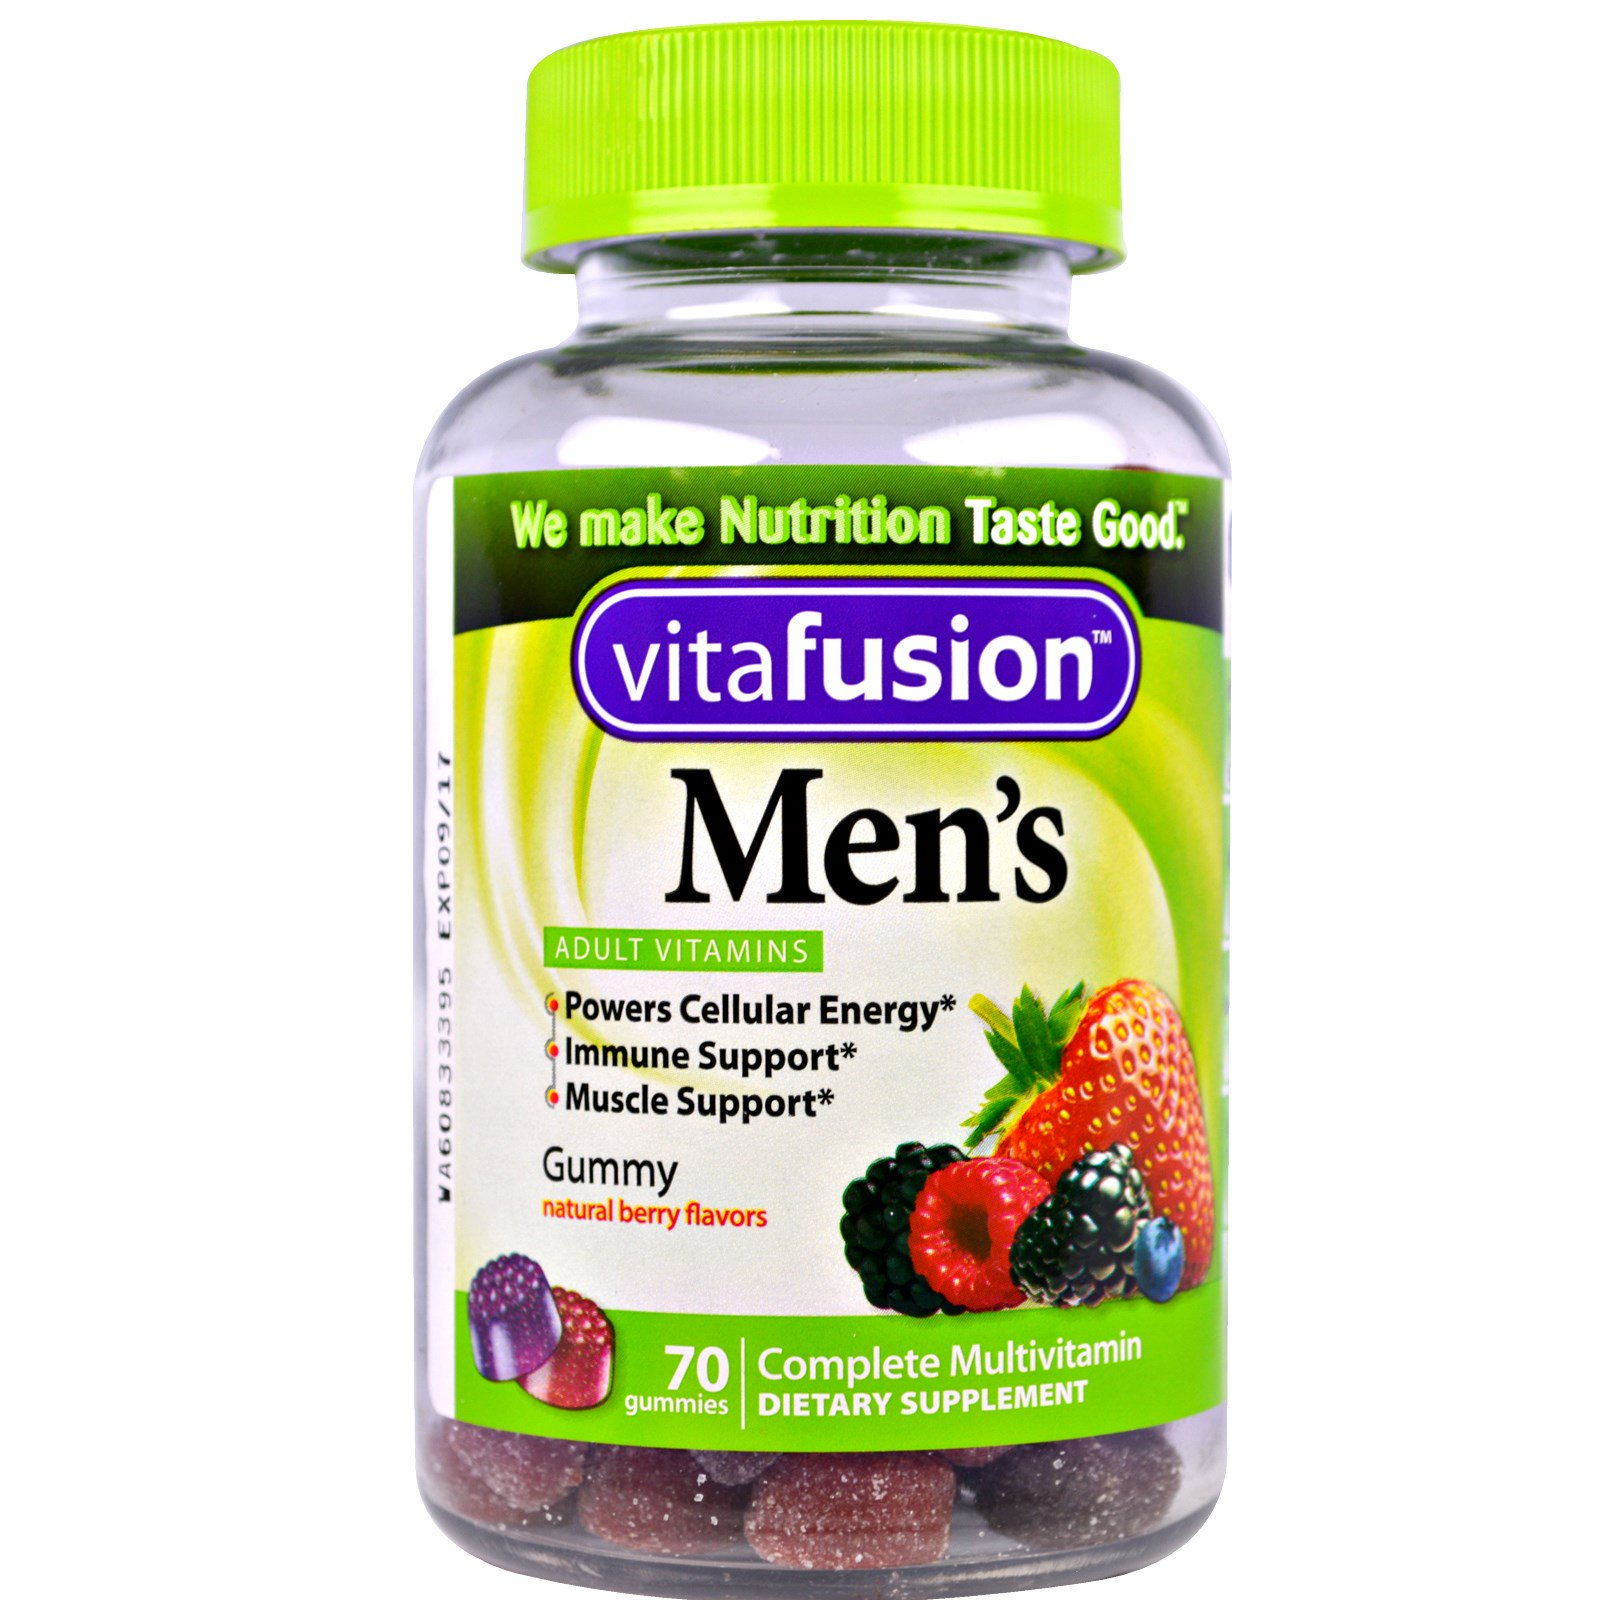 Vitafusion for men